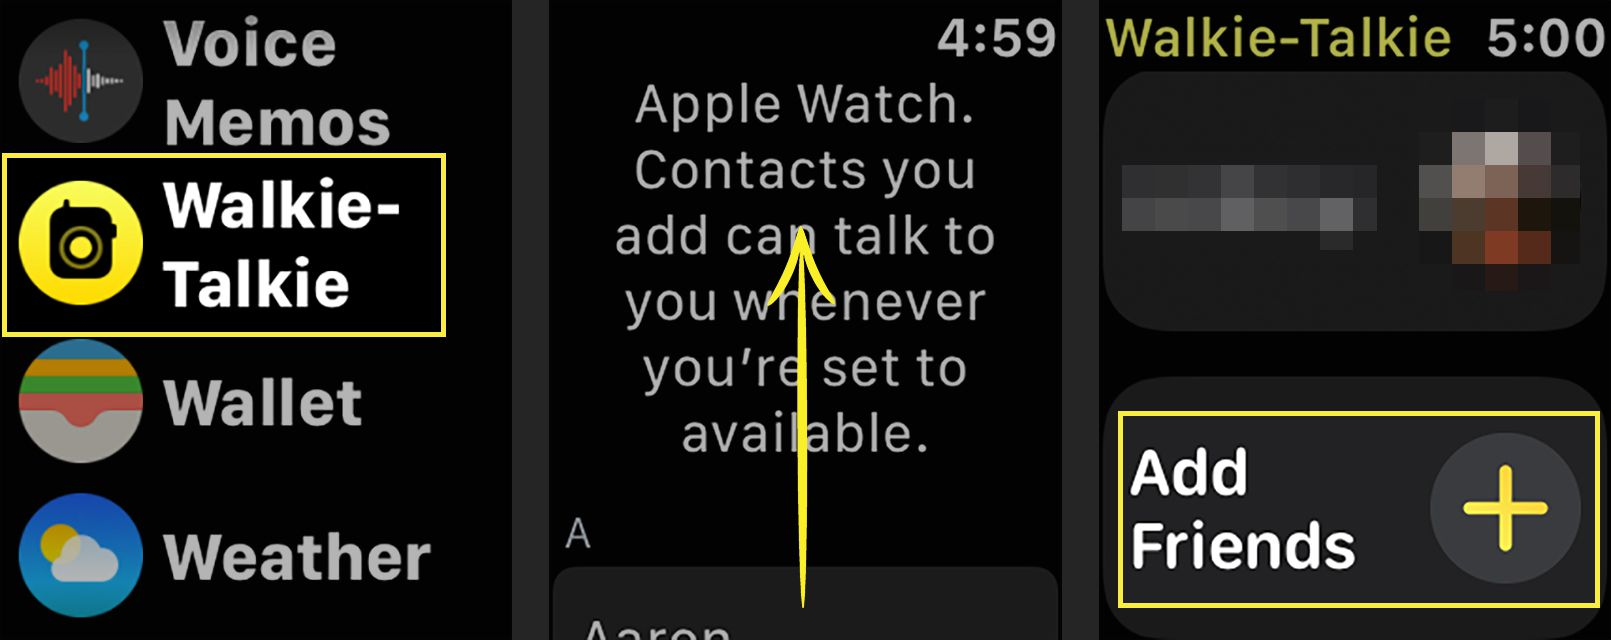 Adding a contact to the Walkie-Talkie app